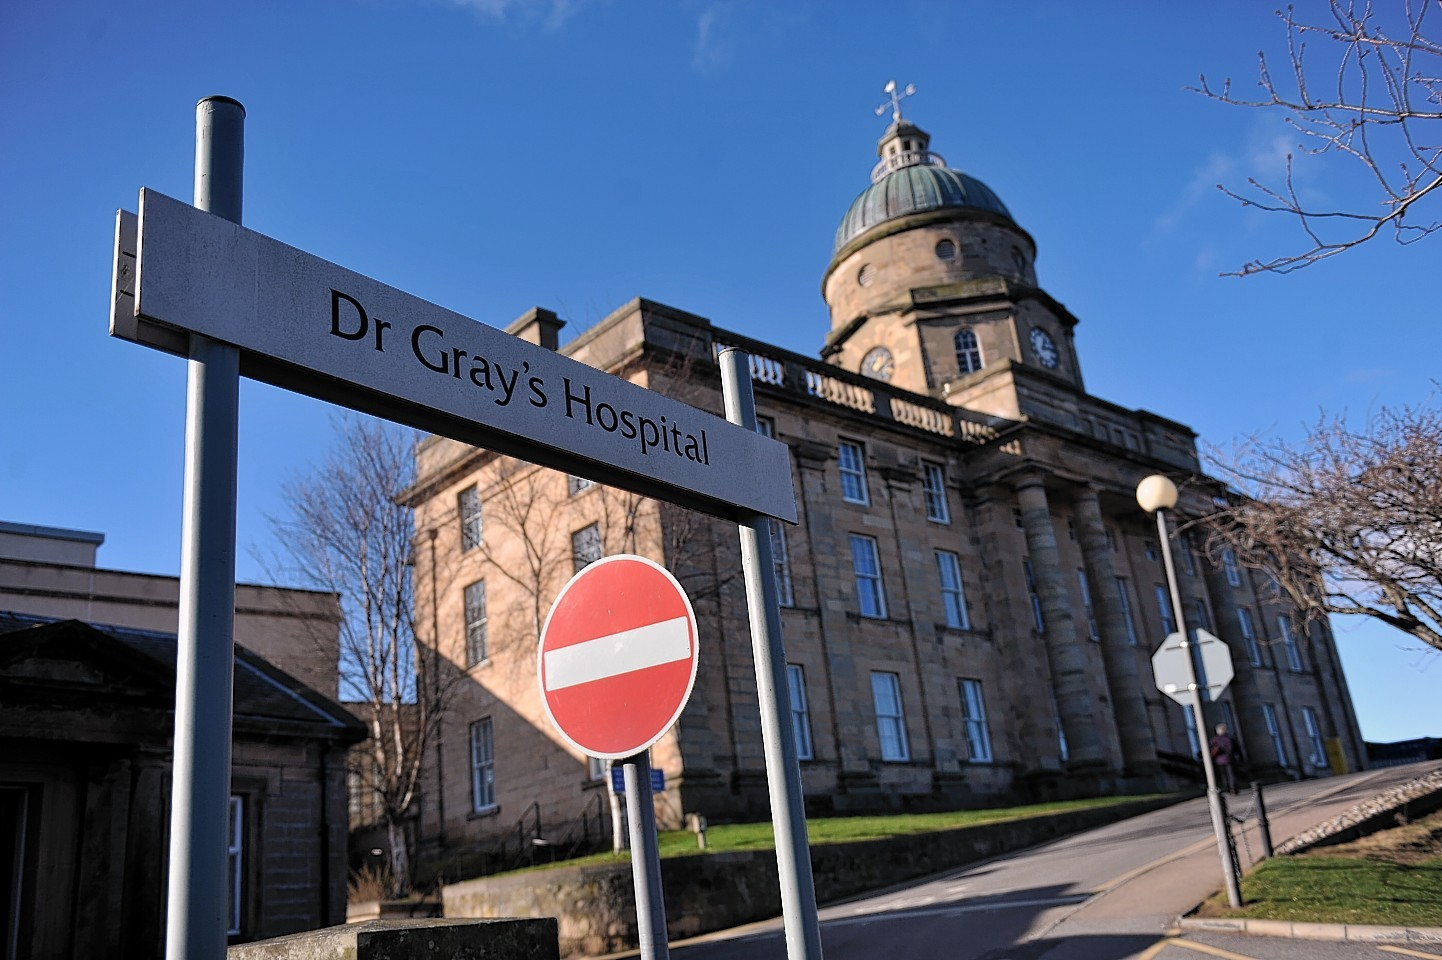 Dr Gray's Hospital in Elgin